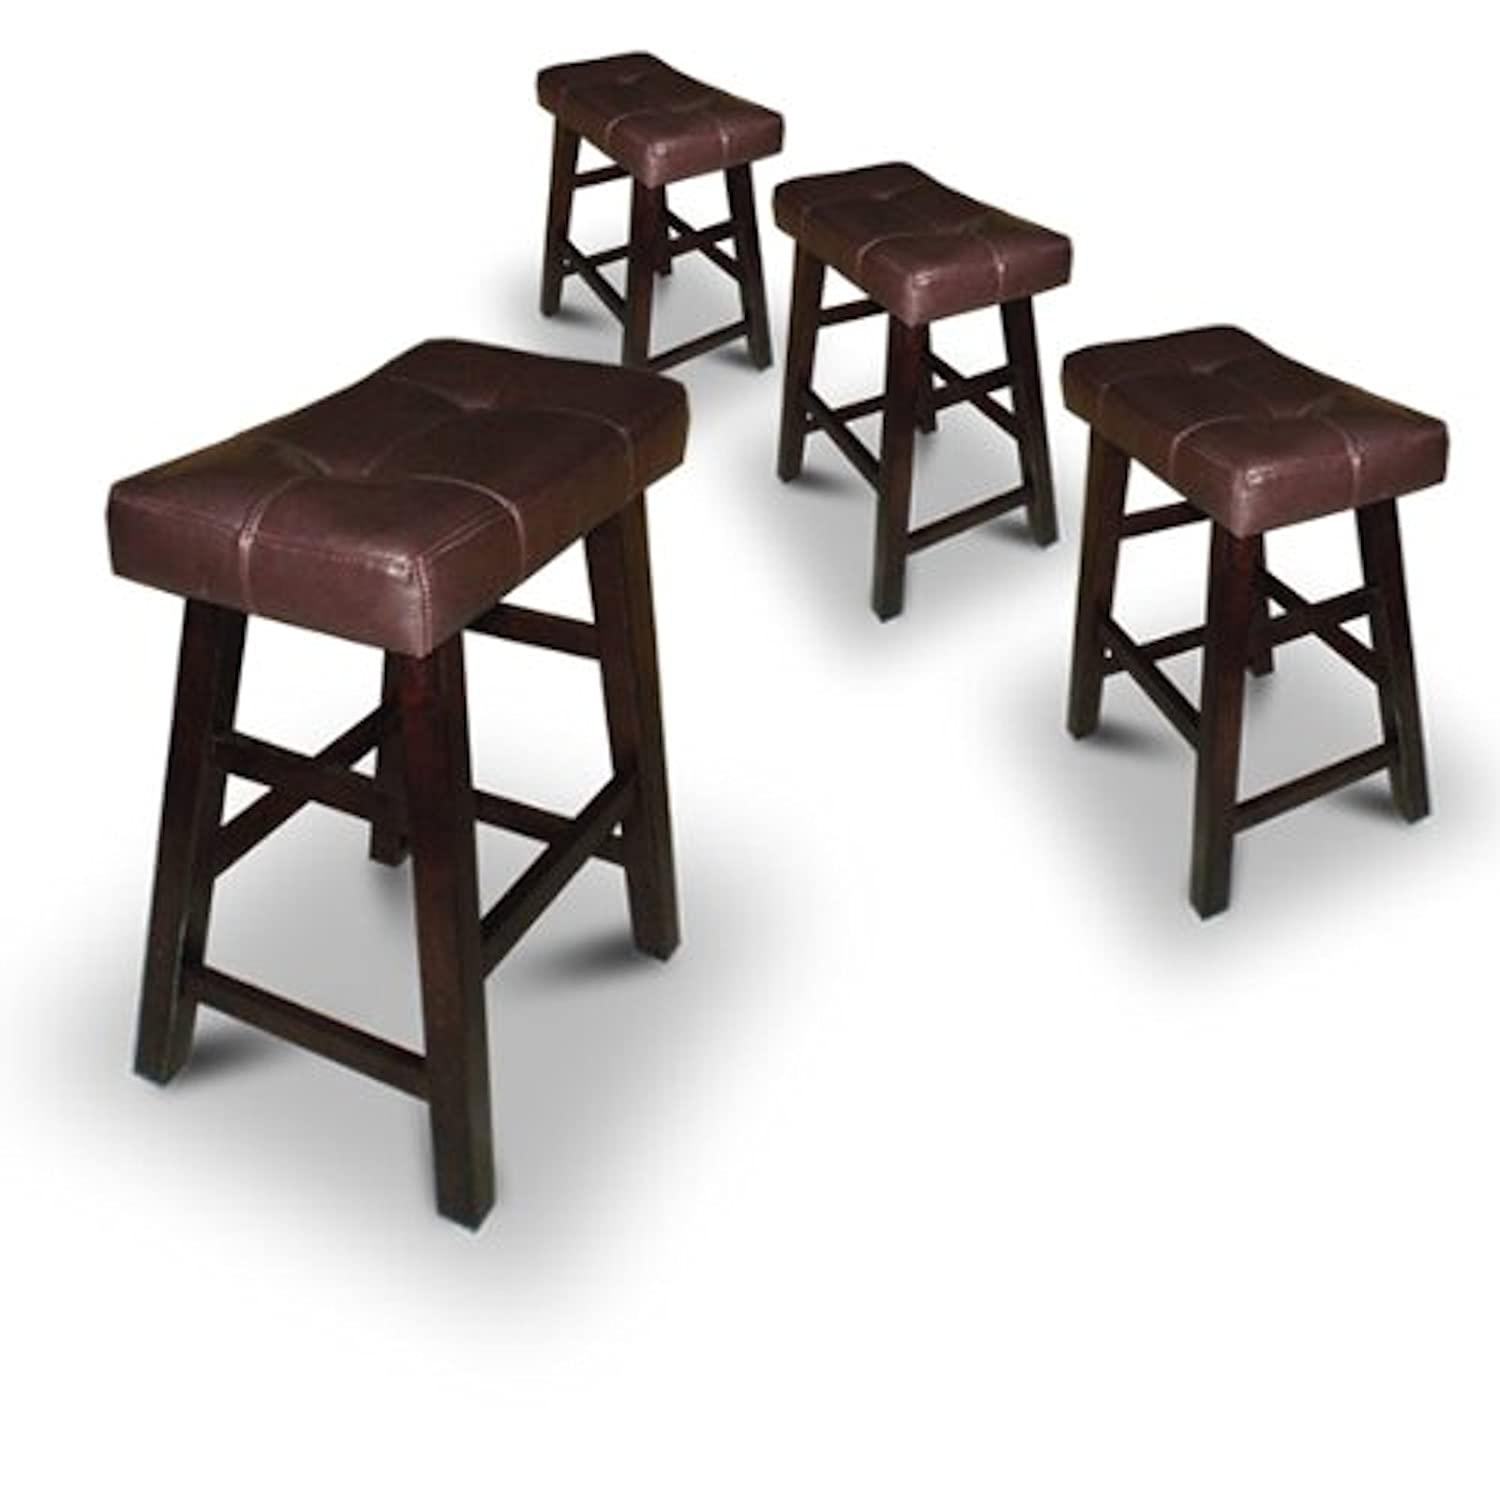 Amazon 4 Dark Espresso Wood Bar Stools with Bonded Faux